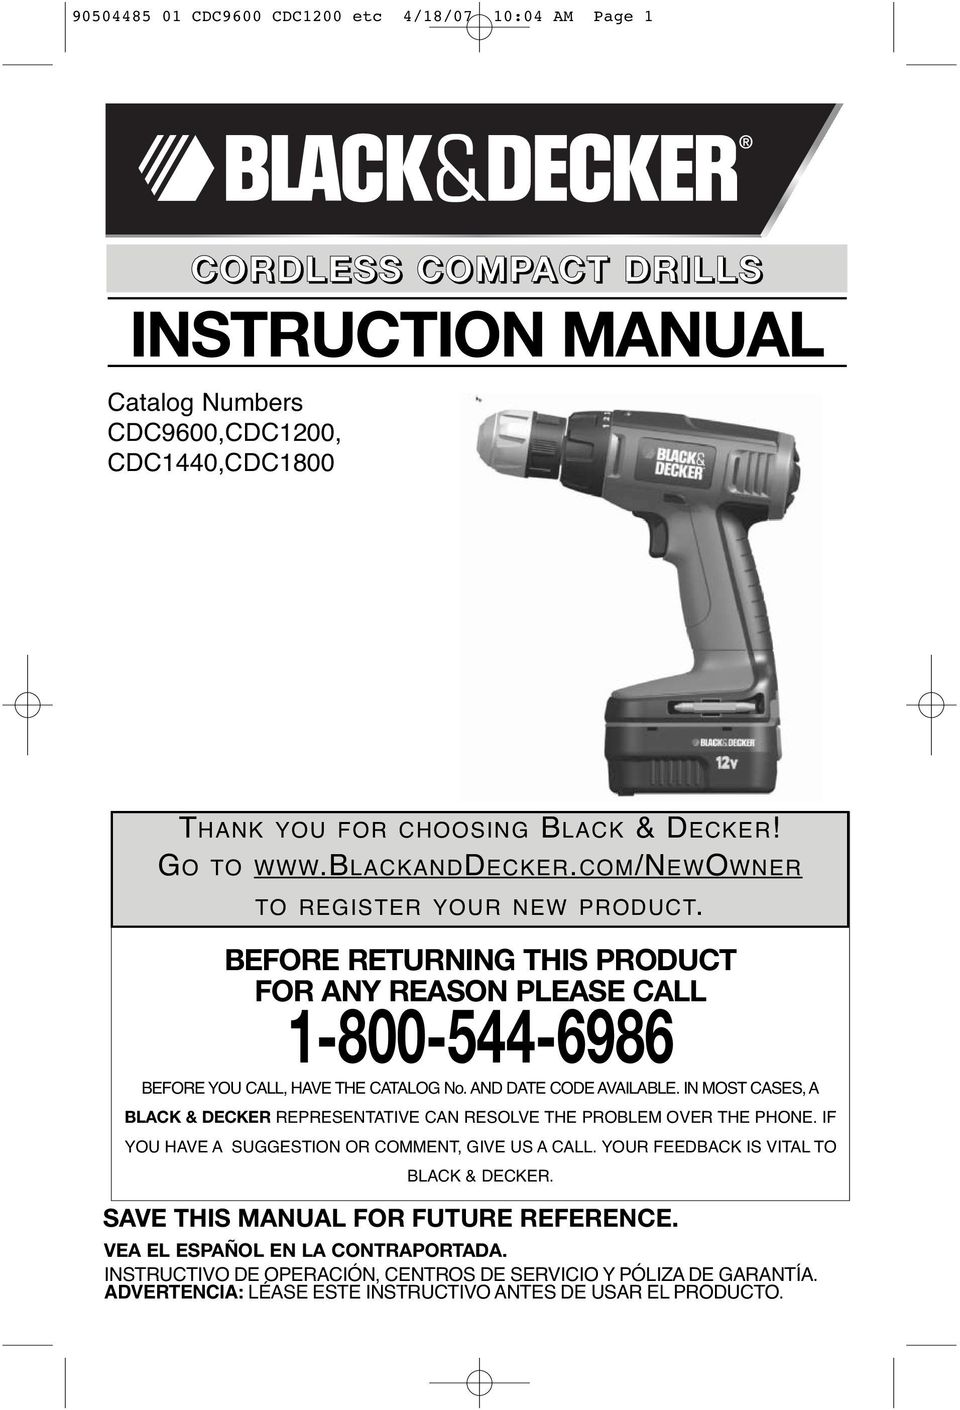 AND DATE CODE AVAILABLE. IN MOST CASES, A BLACK & DECKER REPRESENTATIVE CAN RESOLVE THE PROBLEM OVER THE PHONE. IF YOU HAVE A SUGGESTION OR COMMENT, GIVE US A CALL.